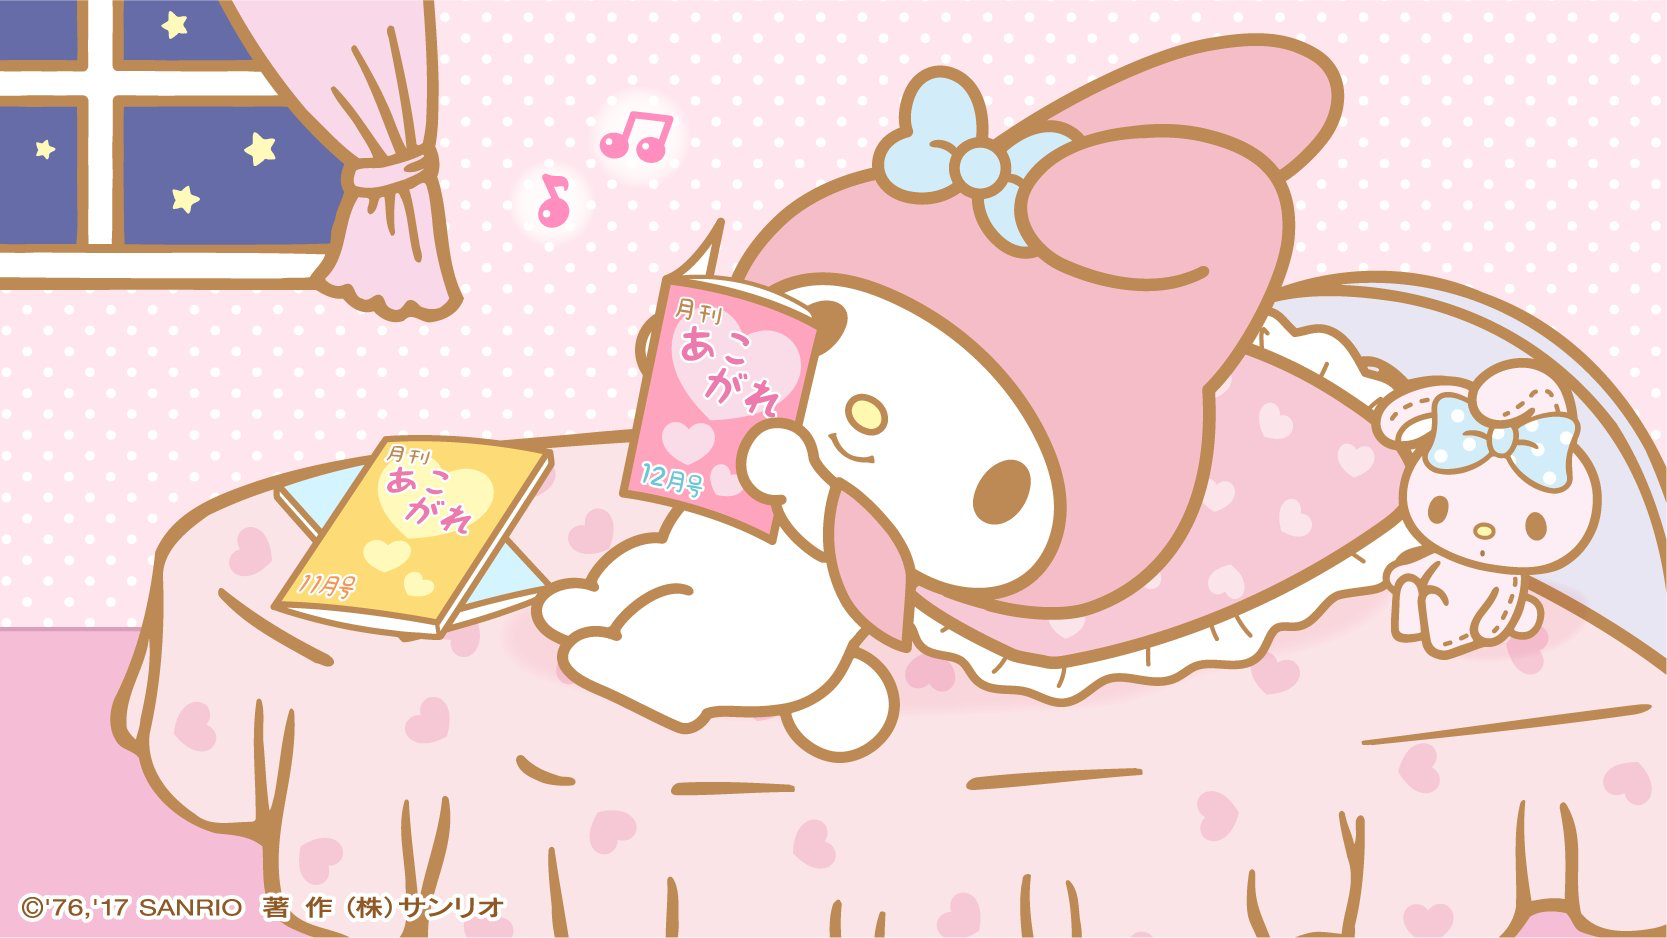 My Melody | My melody, My melody wallpaper, Sanrio wallpaper